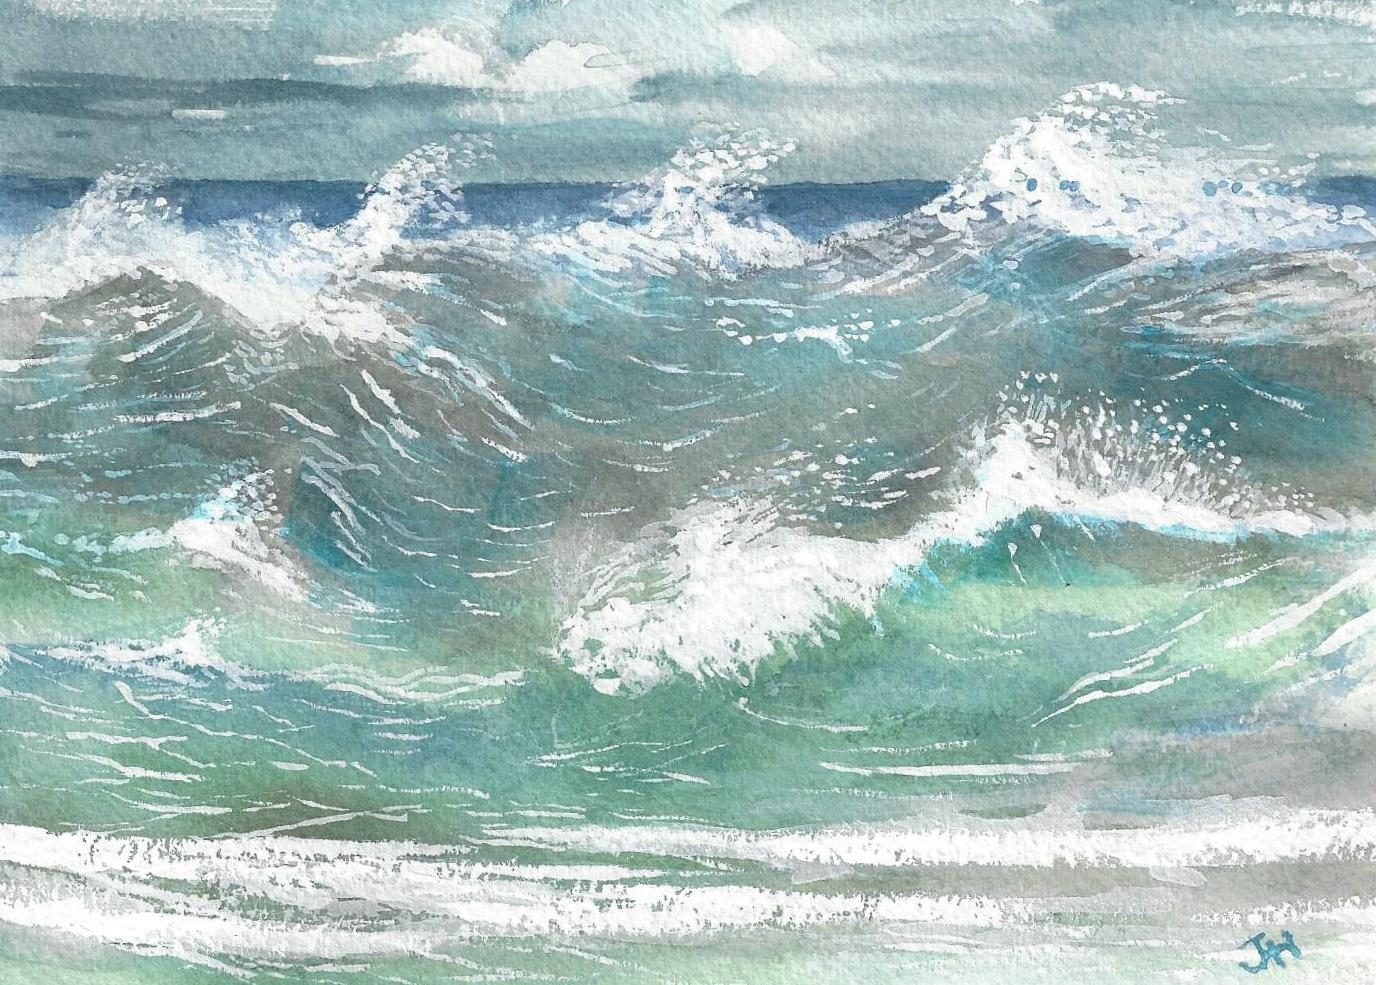 Wild Waves .. a tribute to my brother Rupert who inspired this painting